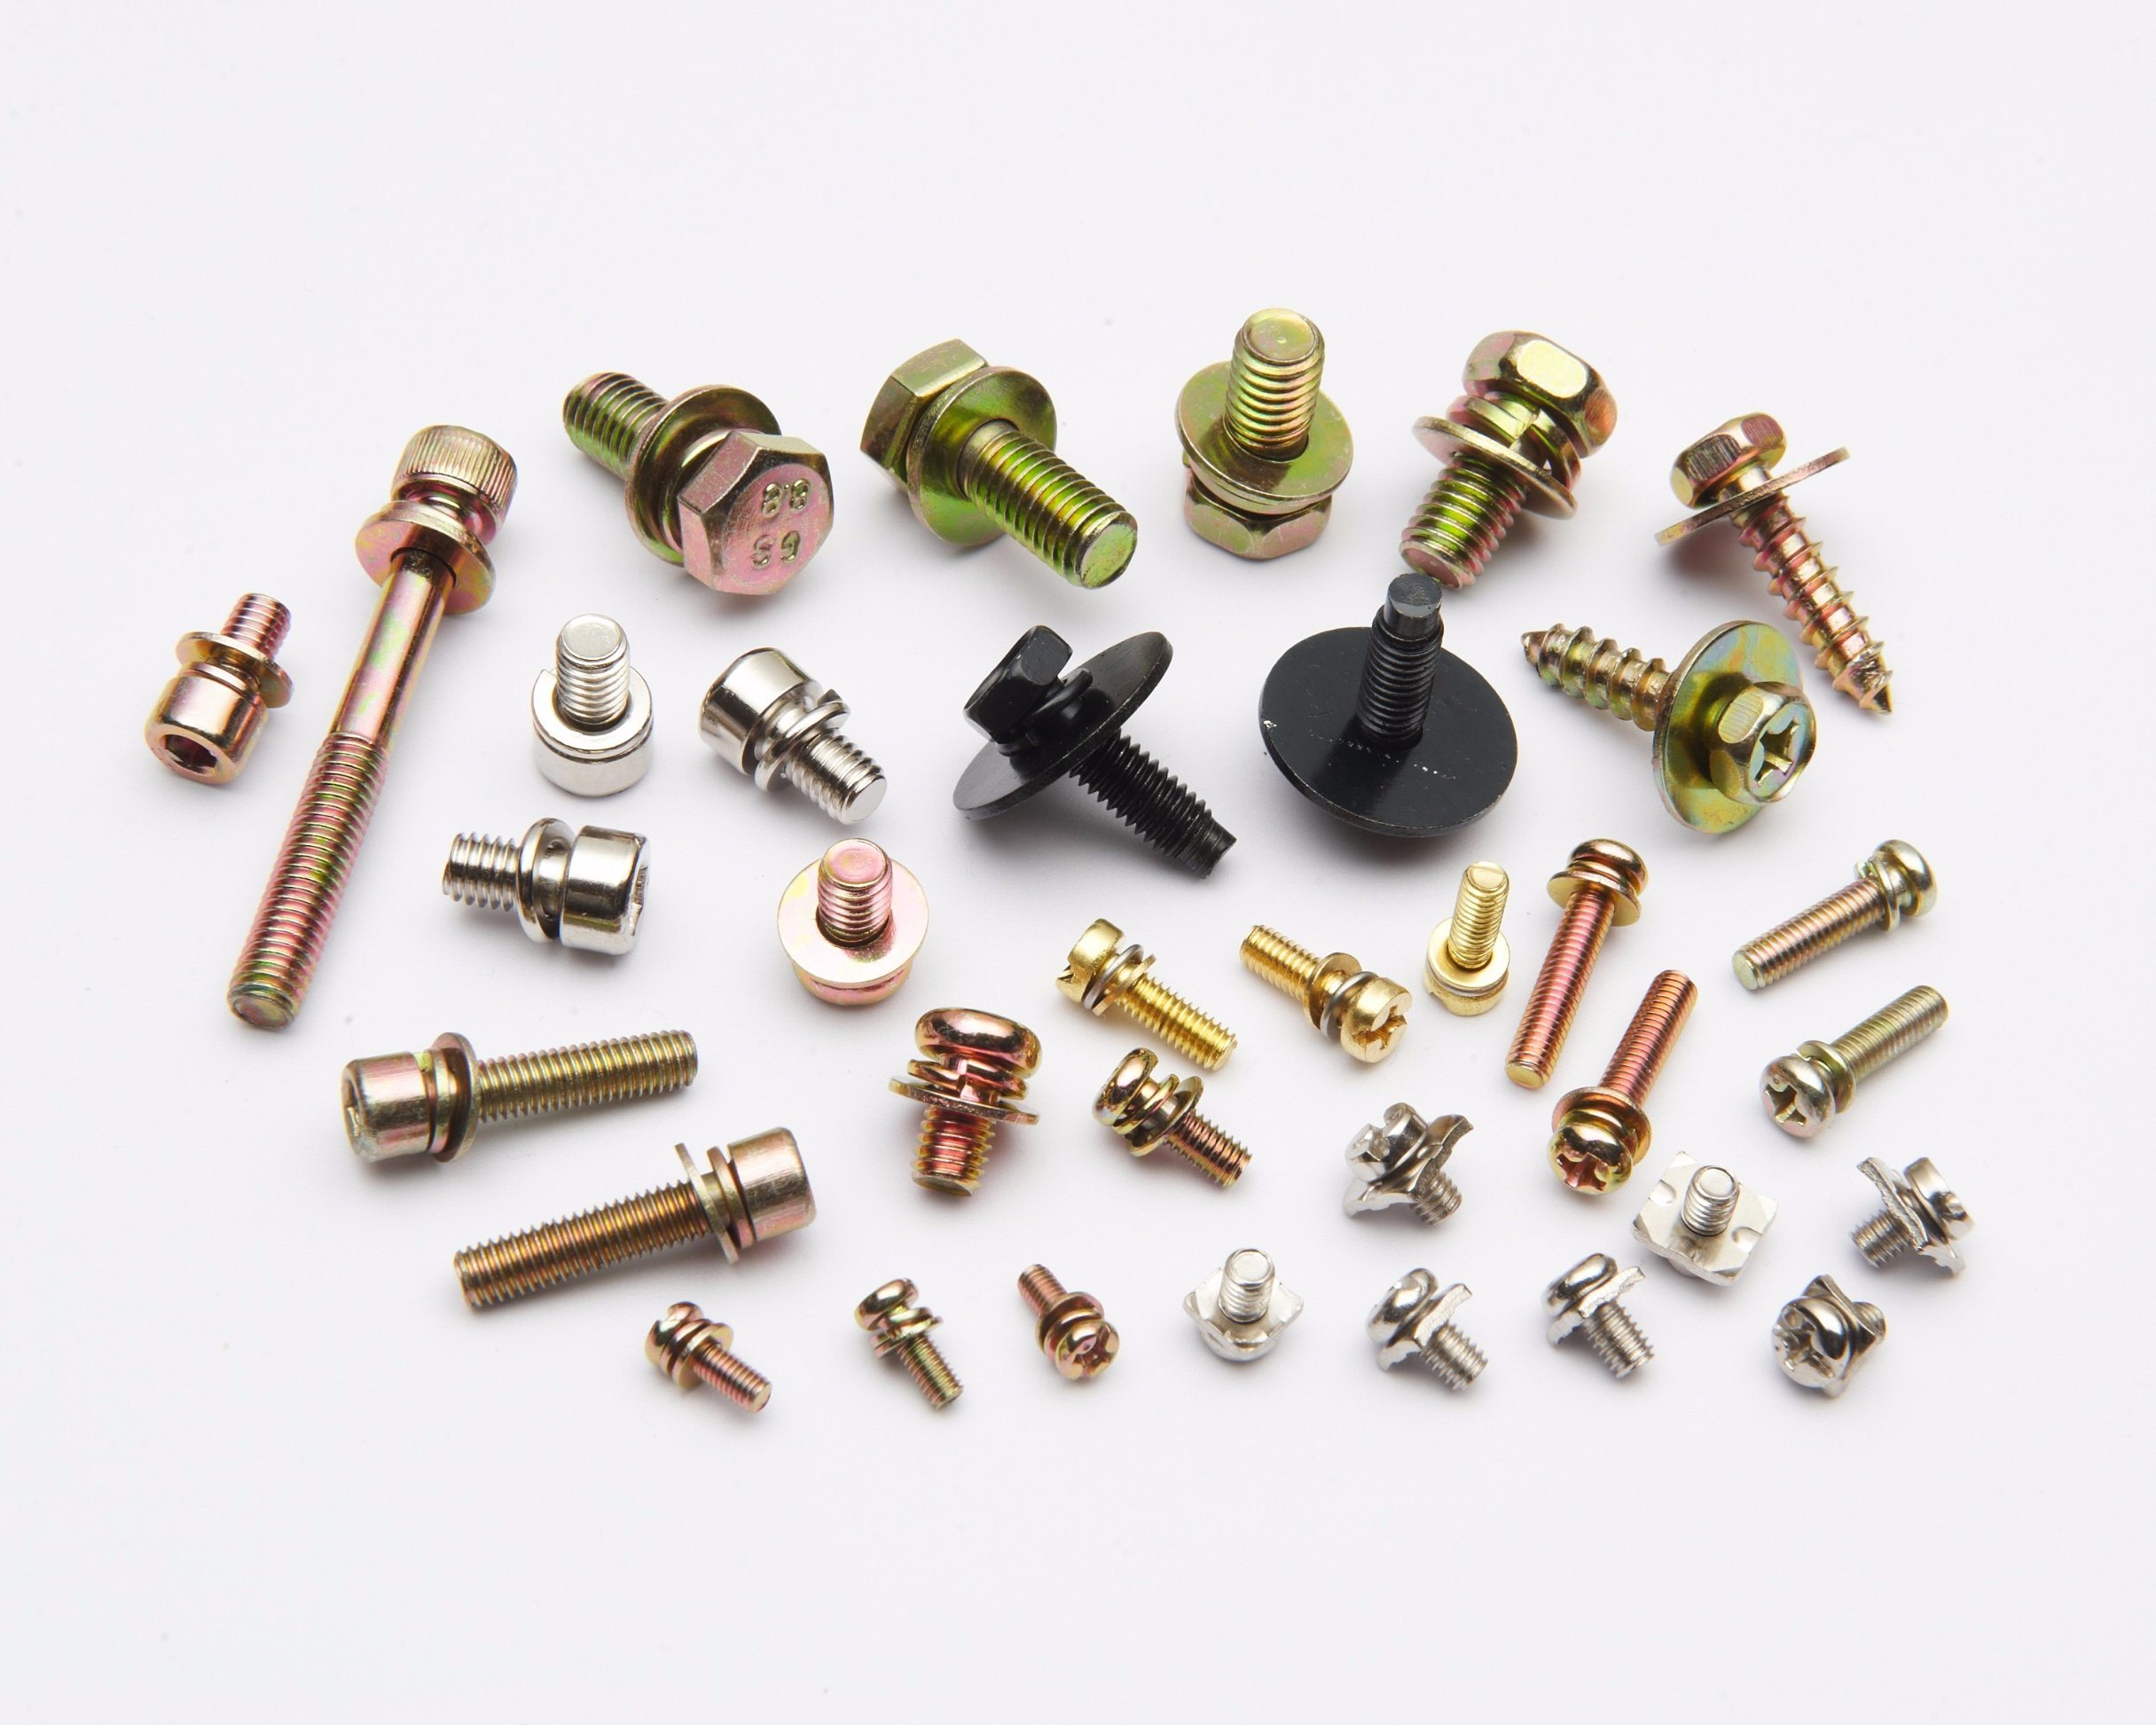 High Strength Steel, Hexagon Socket Countersunk Head Screws, Class 12.9 10.9 8.8, 4.8 M6-M20, OEM pictures & photos